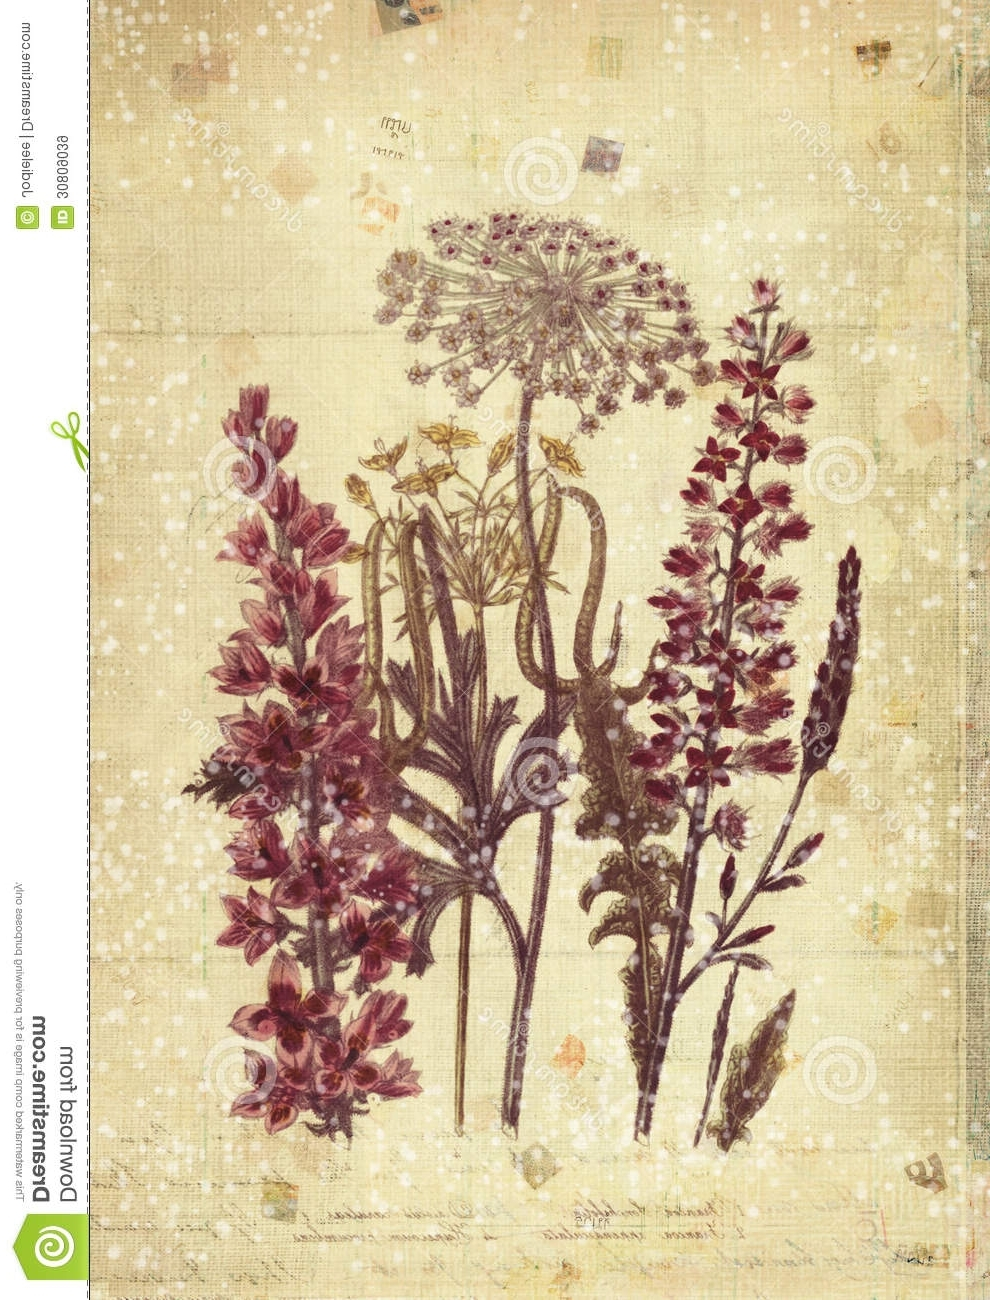 Vintage Style Wall Art Within Best And Newest Flowers Botanical Vintage Style Wall Art With Textured Background (View 6 of 15)